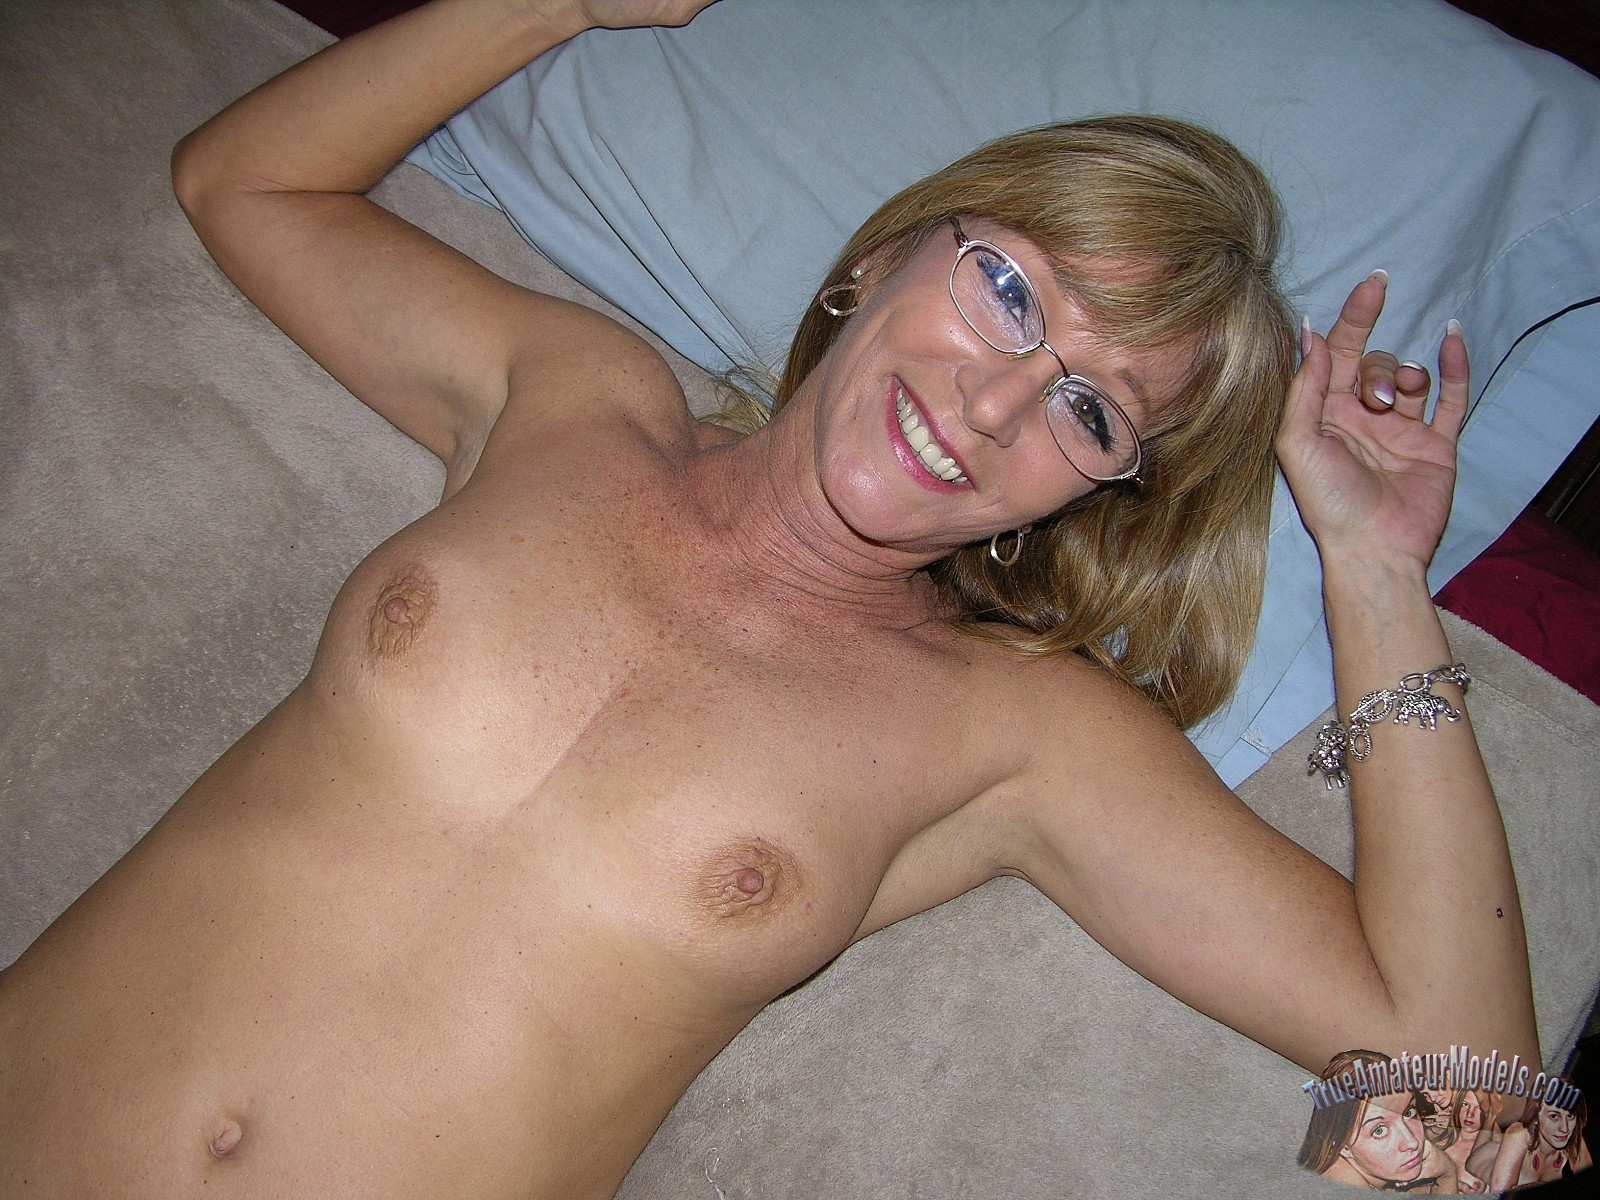 Amateur nude milf with glasses